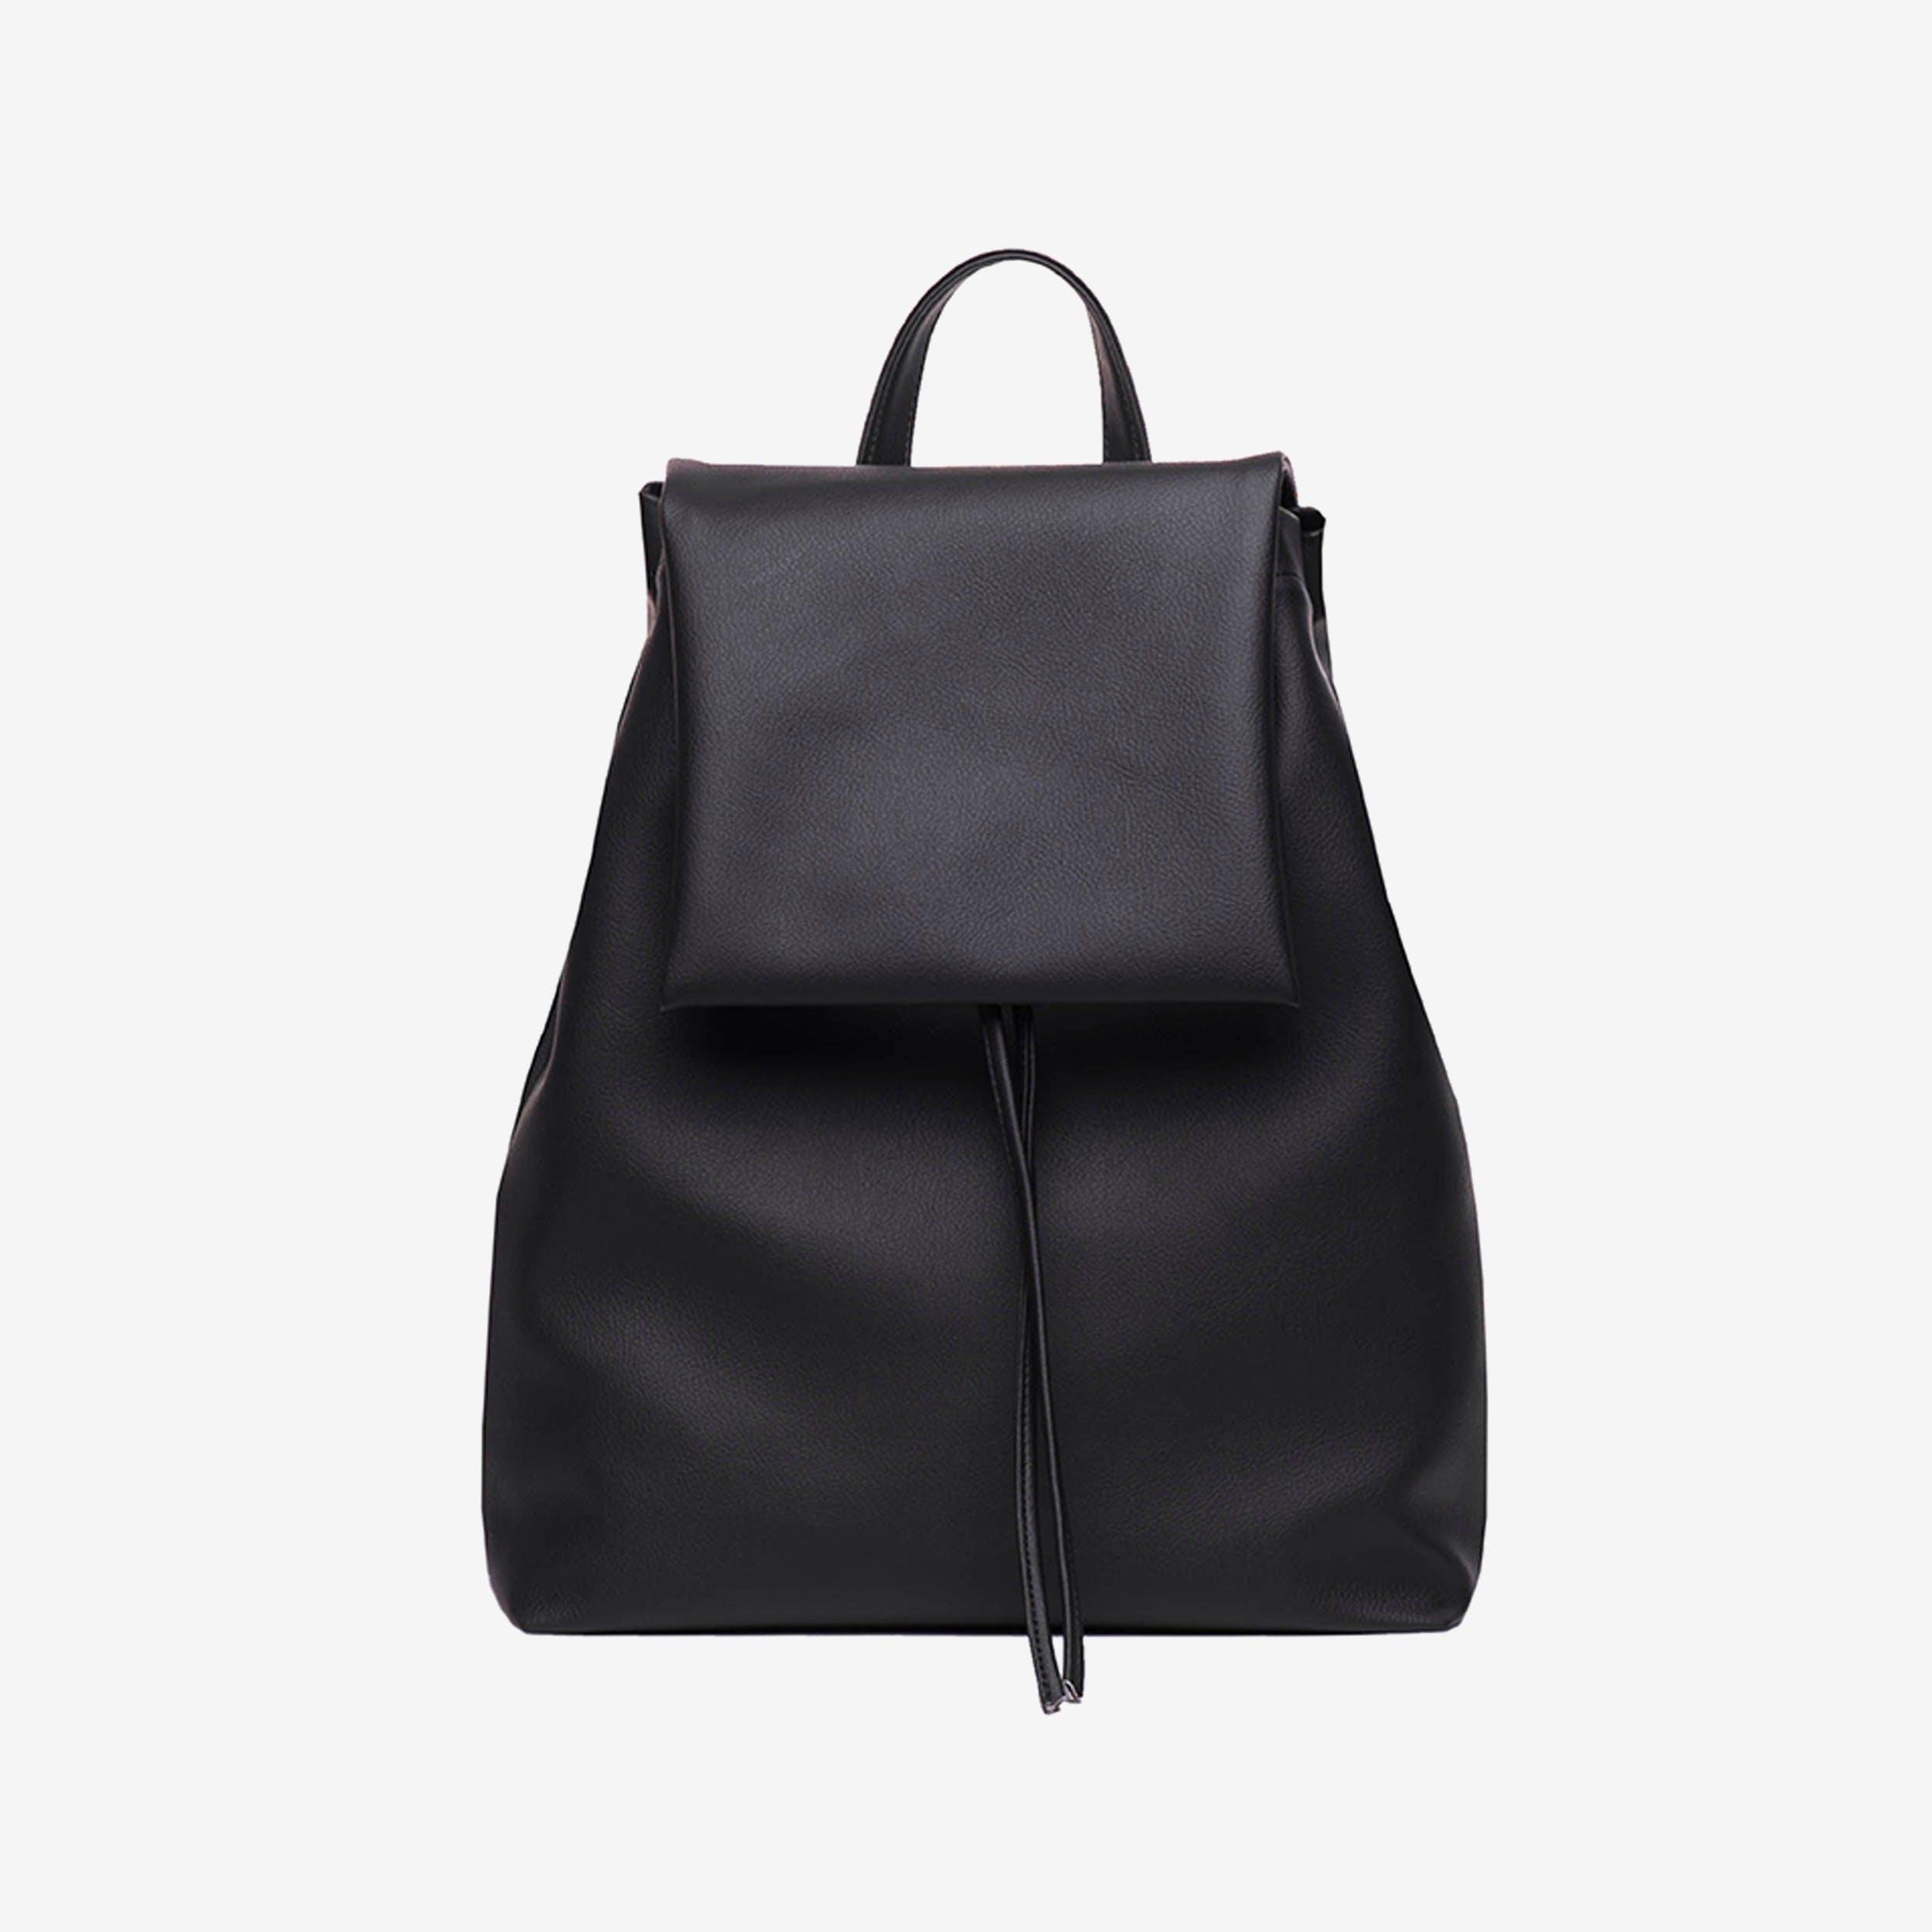 Boo Backpack In Black